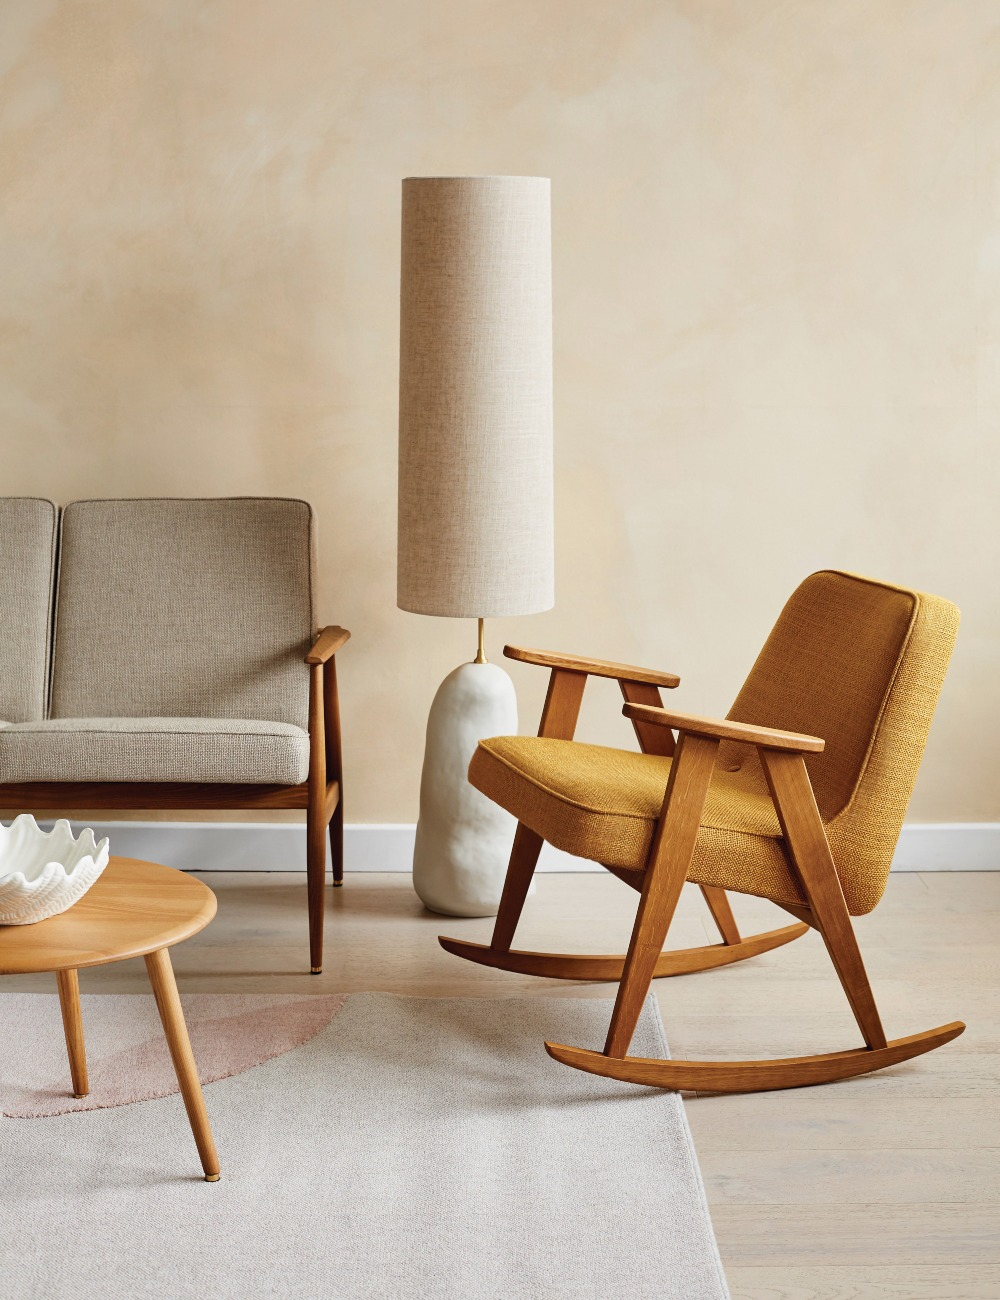 The Mid-Century Collection